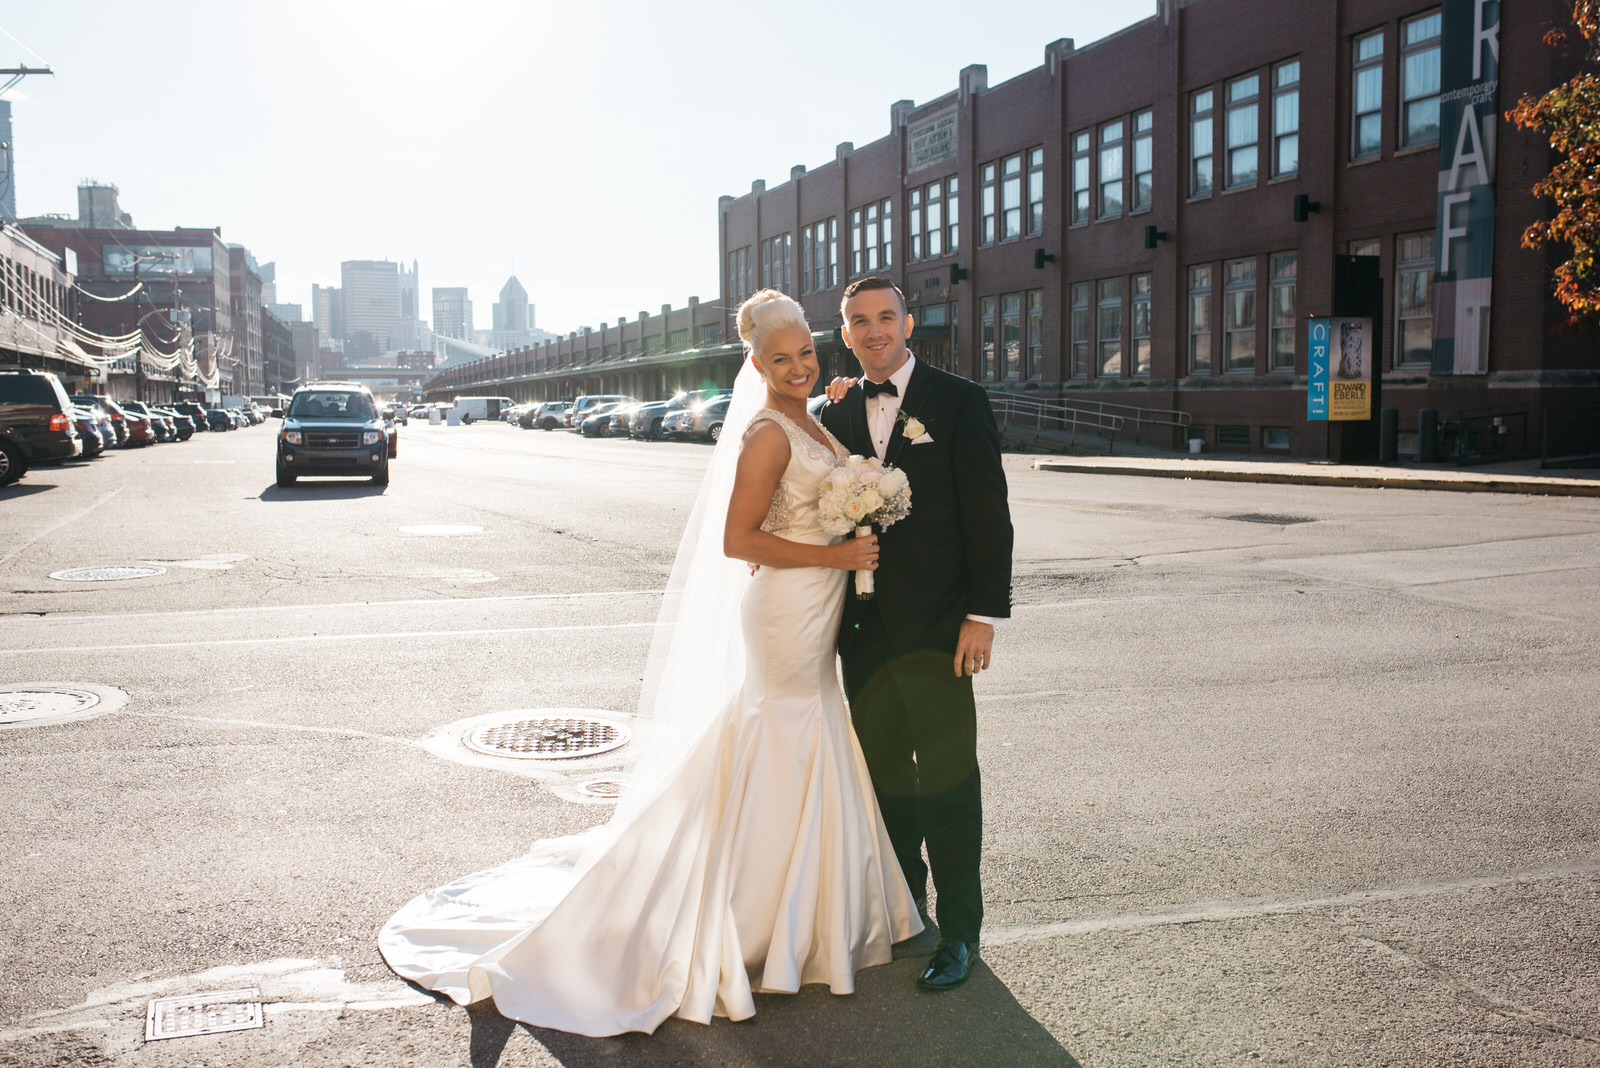 hilton_garden_inn_southpointe_pittsburgh_weddings_50.jpg